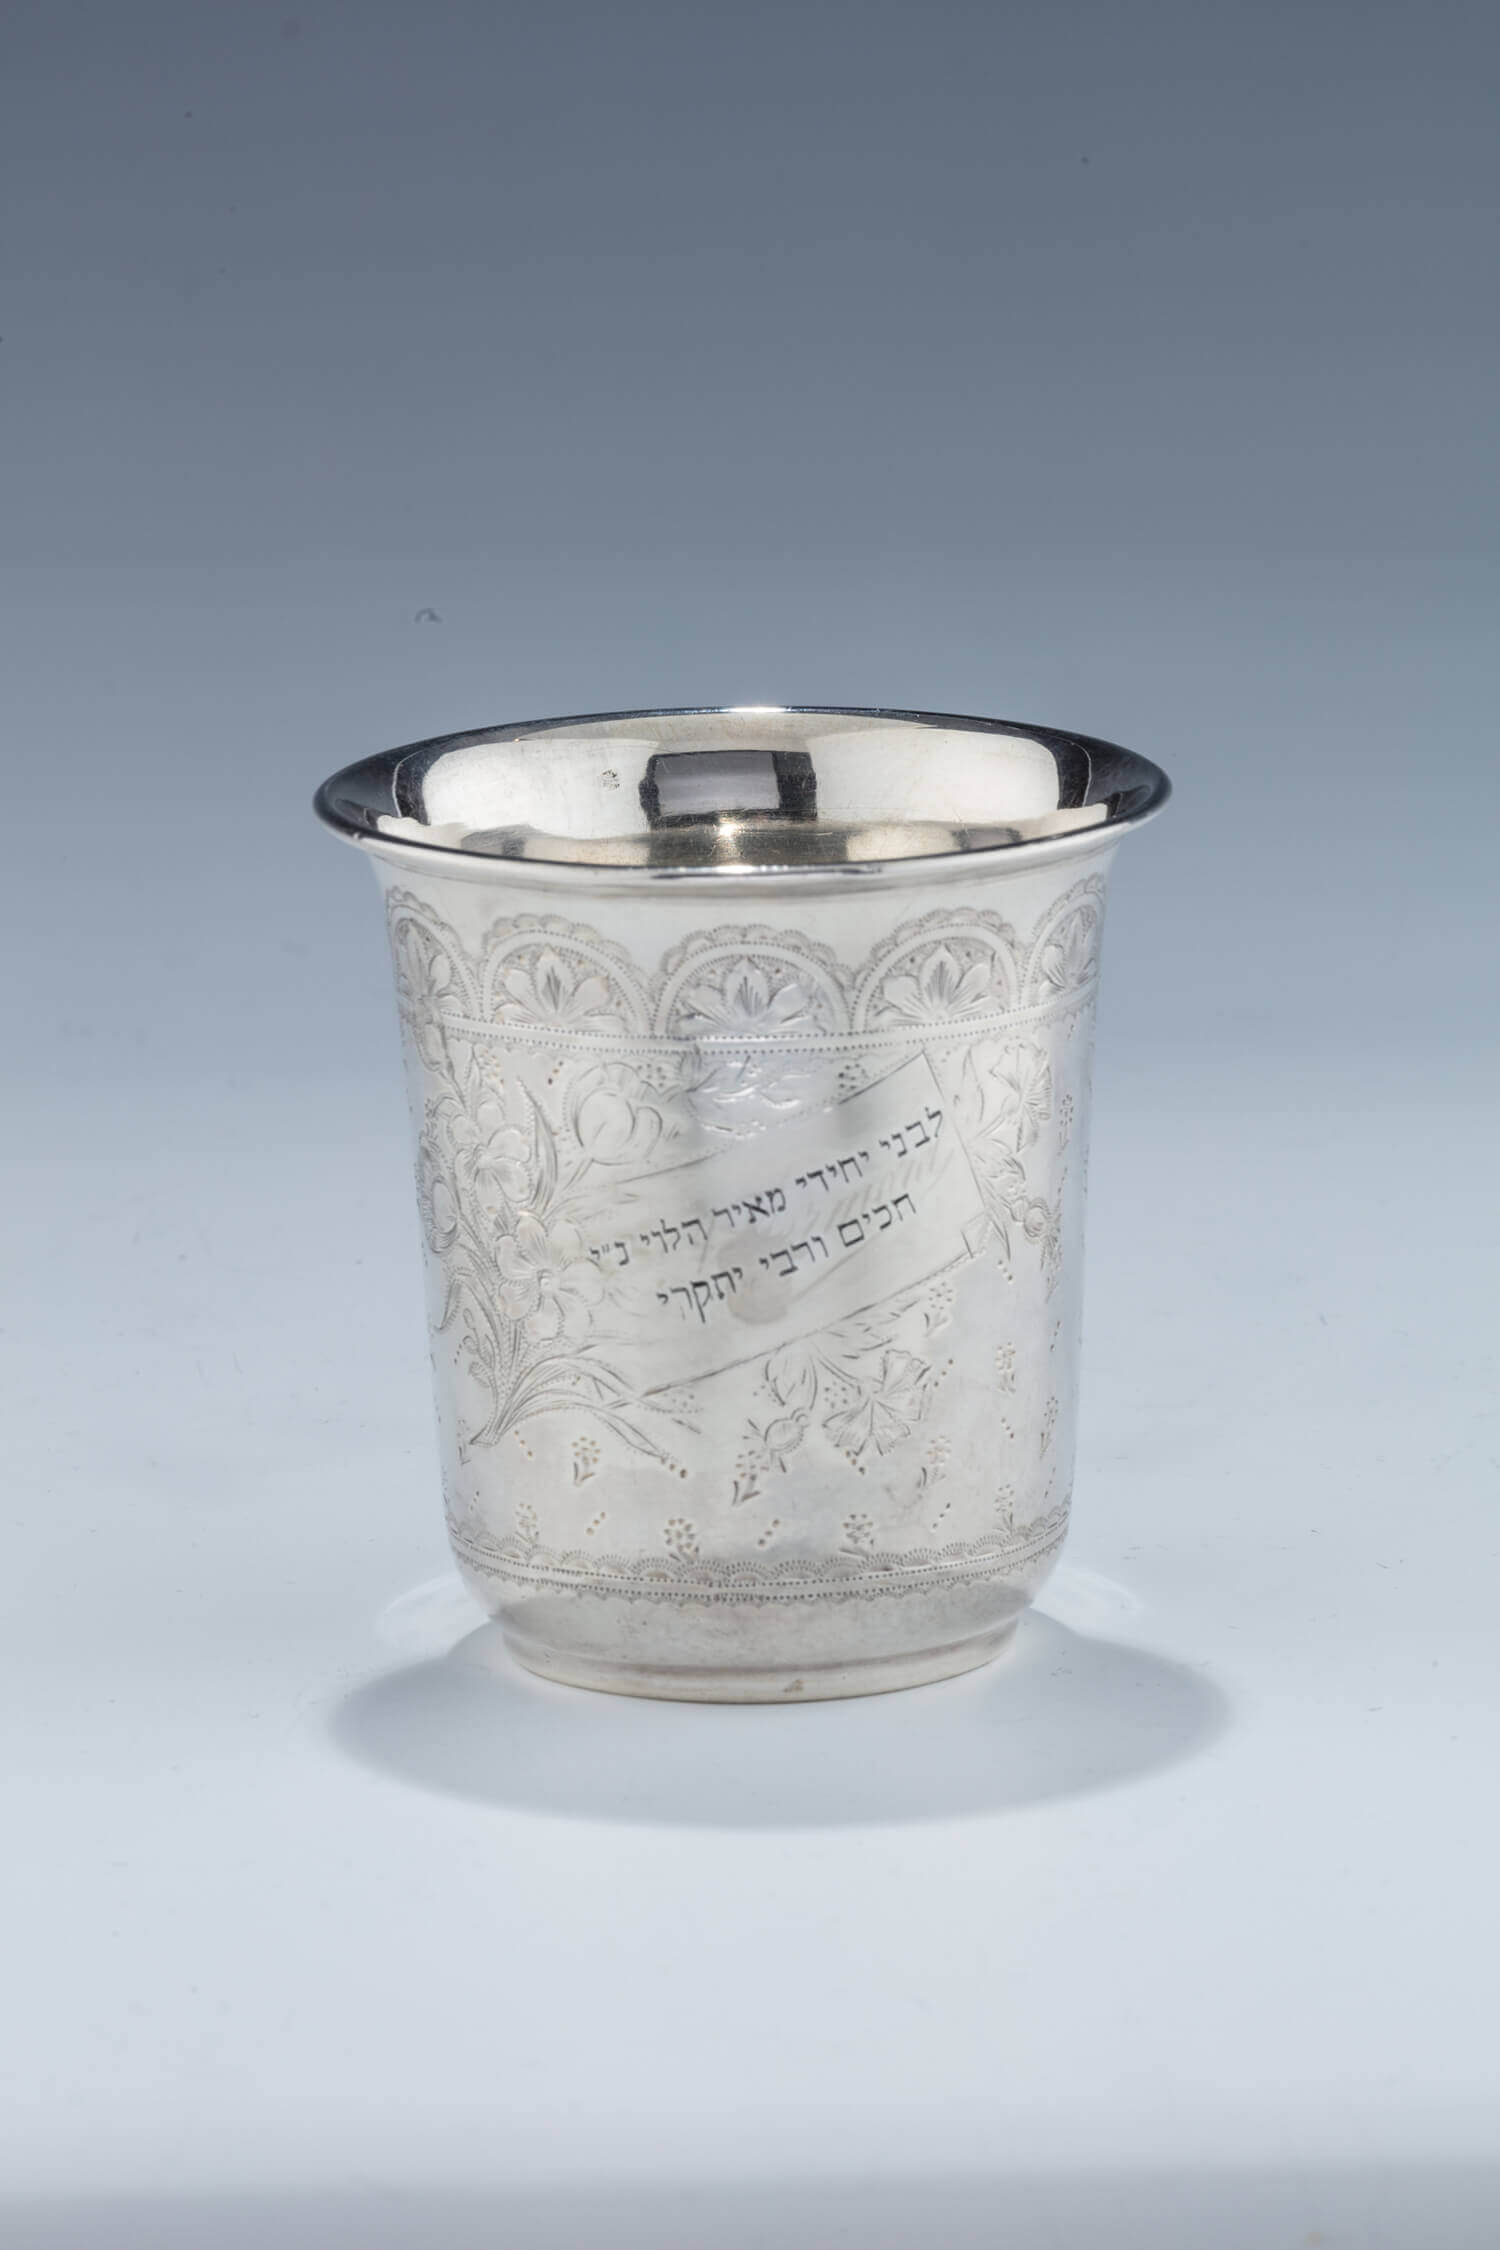 029. A LARGE SILVER KIDDUSH CUP